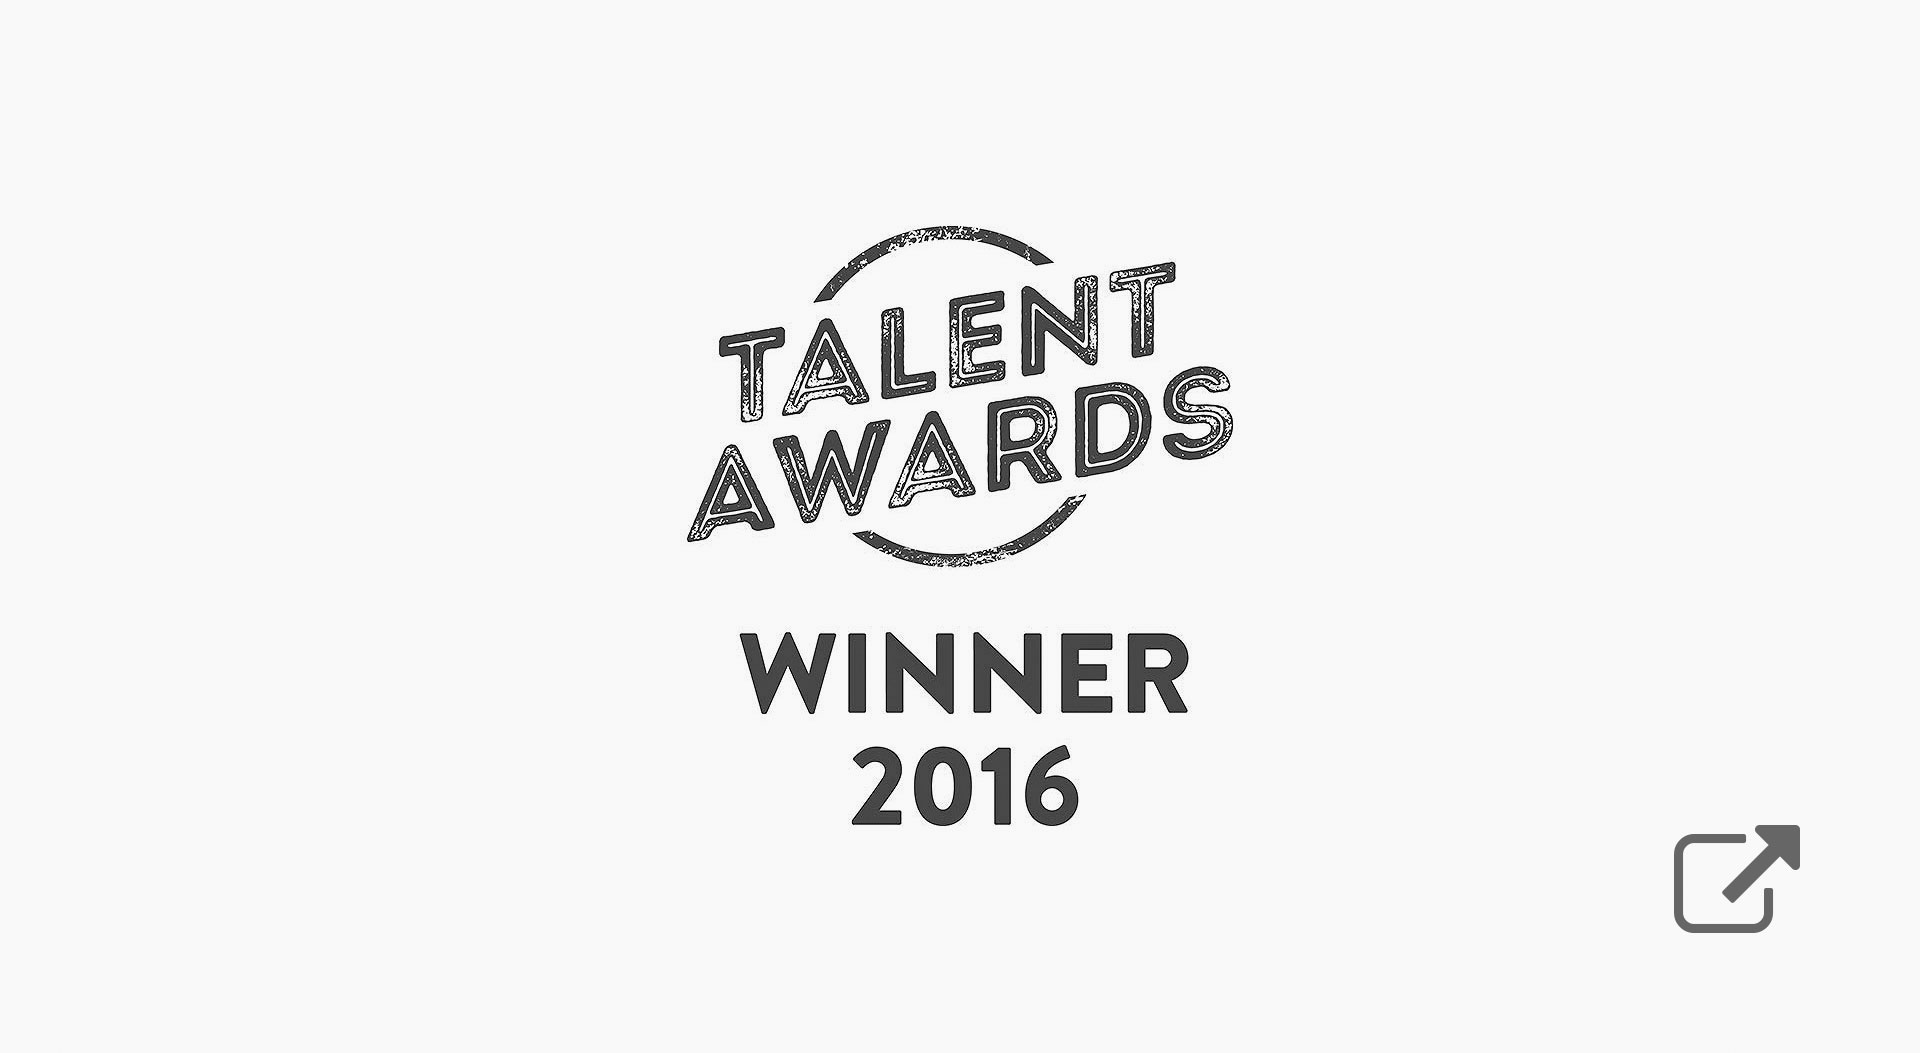 aquent talent awards winner 2016